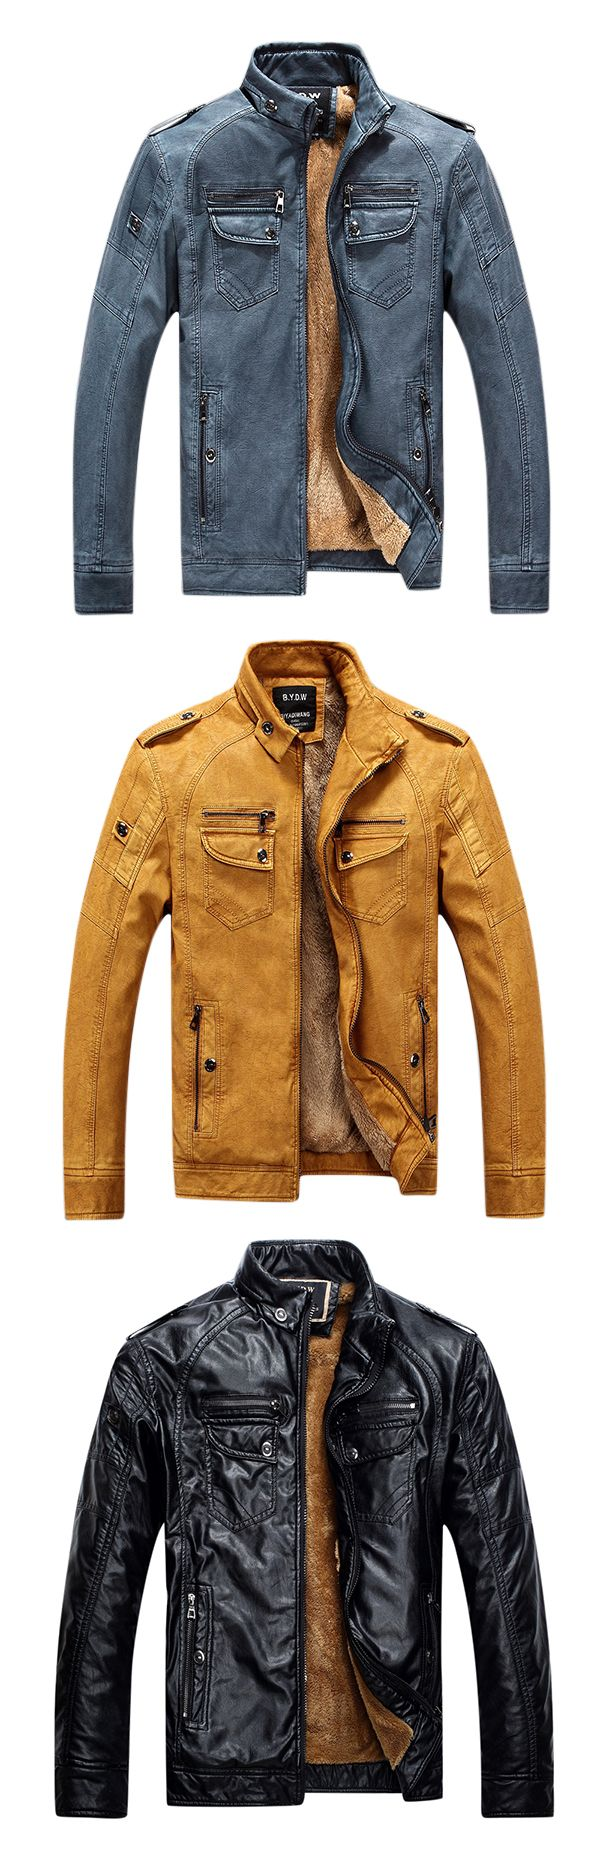 Outdoor Fleece Multi-Pocket Leather Jacket: Motorcycle